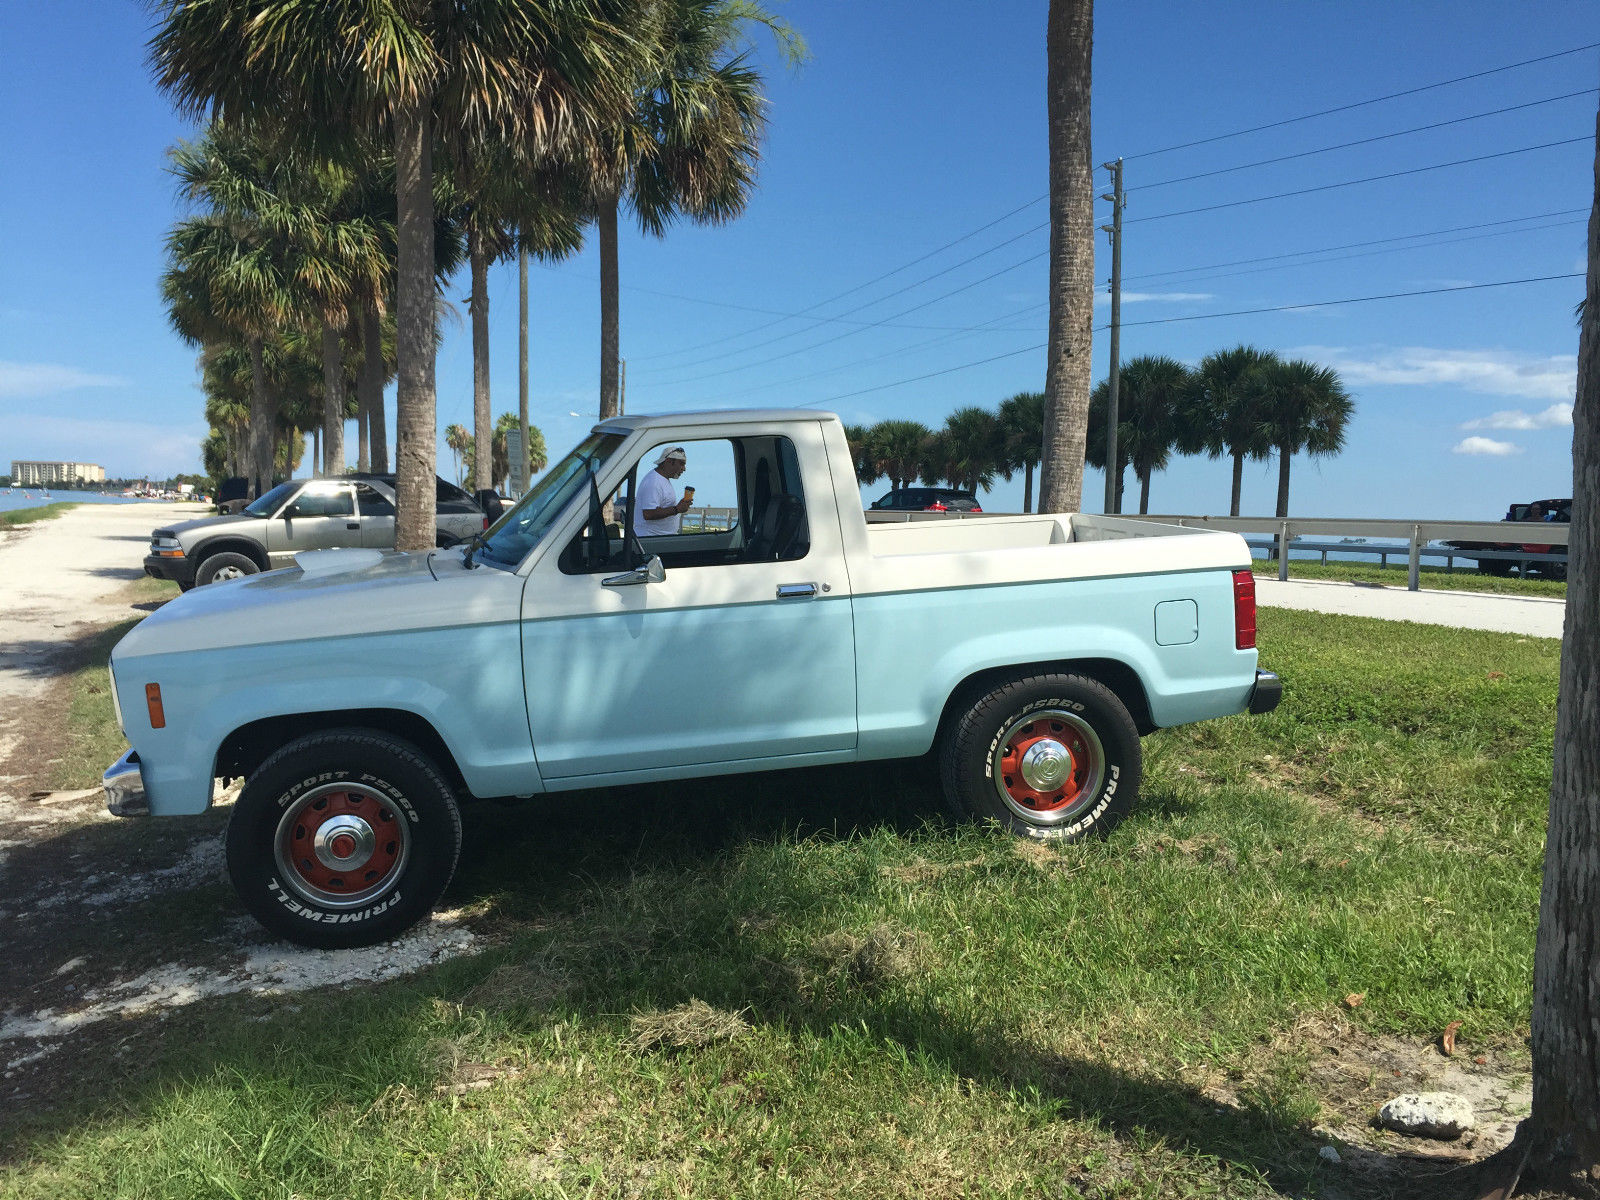 1986 ford bronco ii project show truck for sale. Black Bedroom Furniture Sets. Home Design Ideas